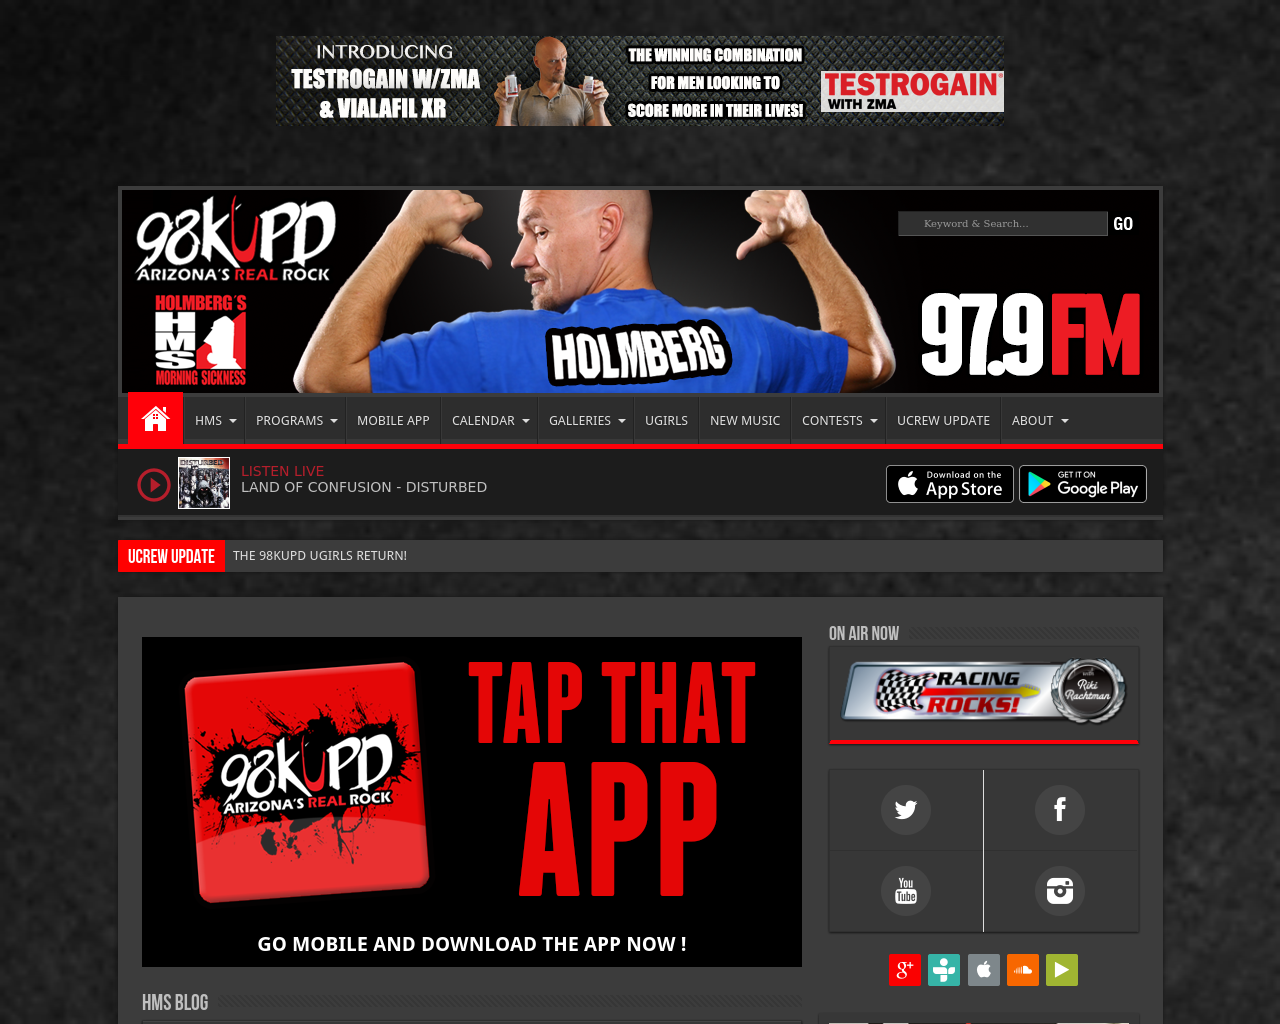 98KUPD-Arizona's-Real-Rock-Advertising-Reviews-Pricing